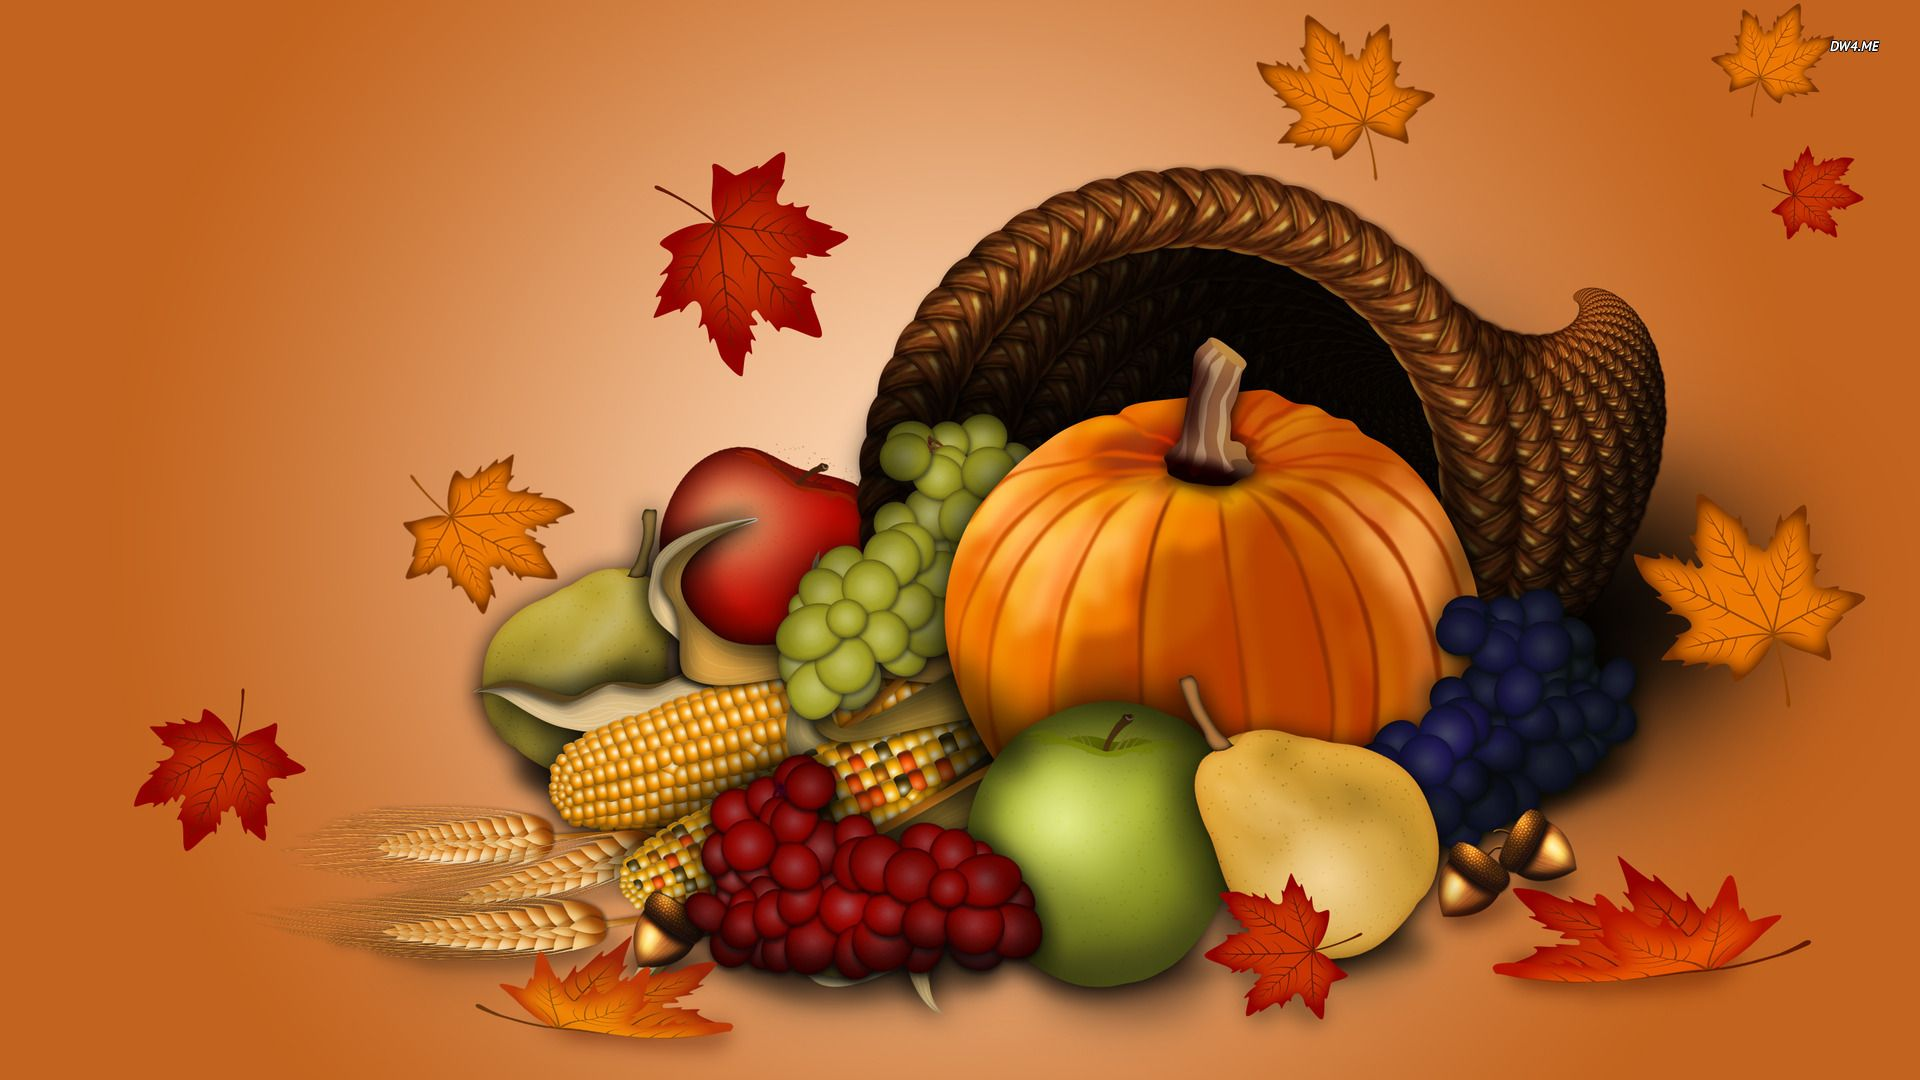 Thanksgiving Desktop Hd Wallpaper